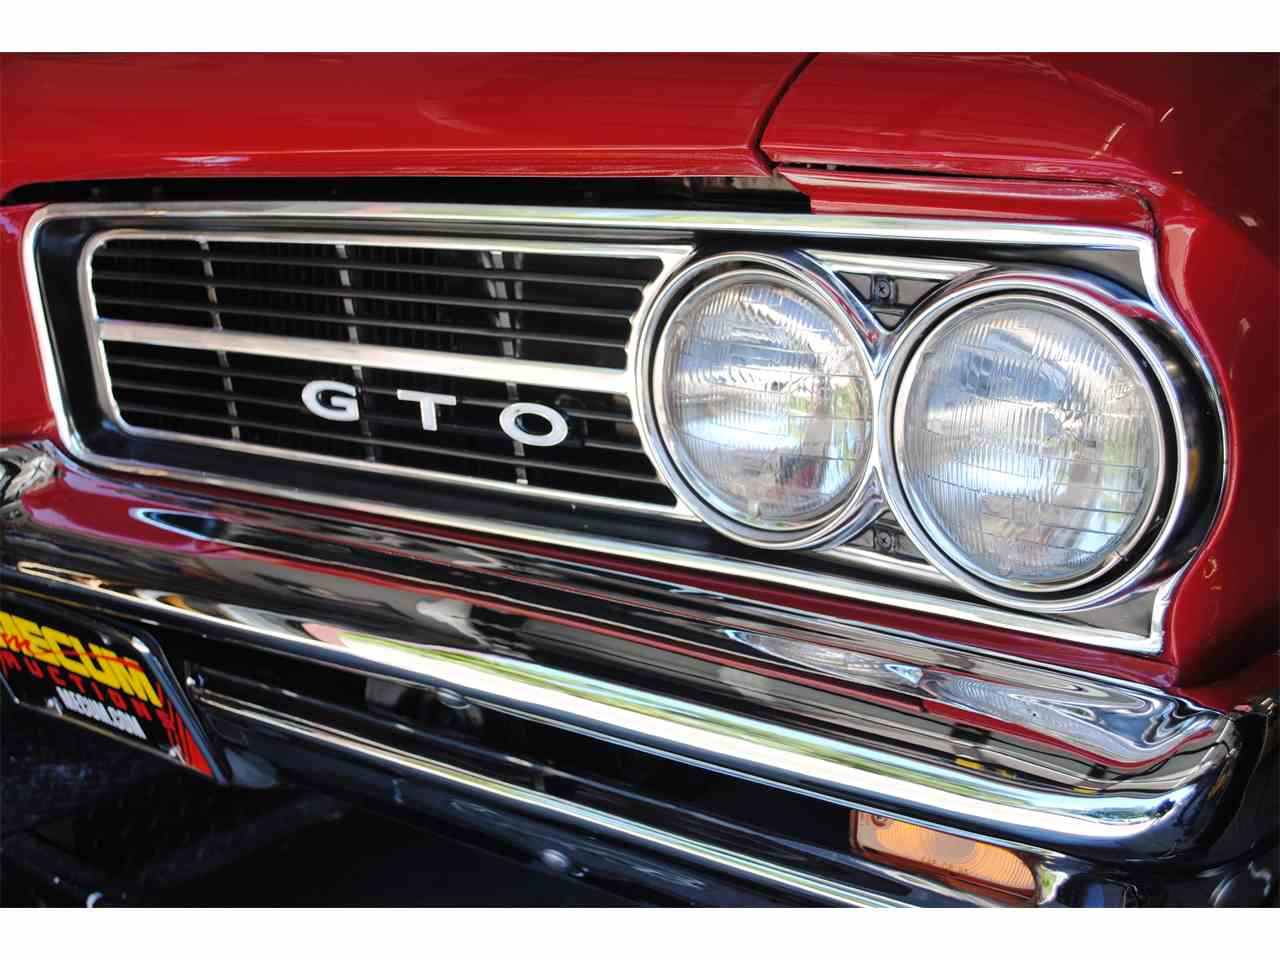 Large Picture of 1964 Pontiac GTO located in Oregon - $45,000.00 Offered by a Private Seller - LE7M